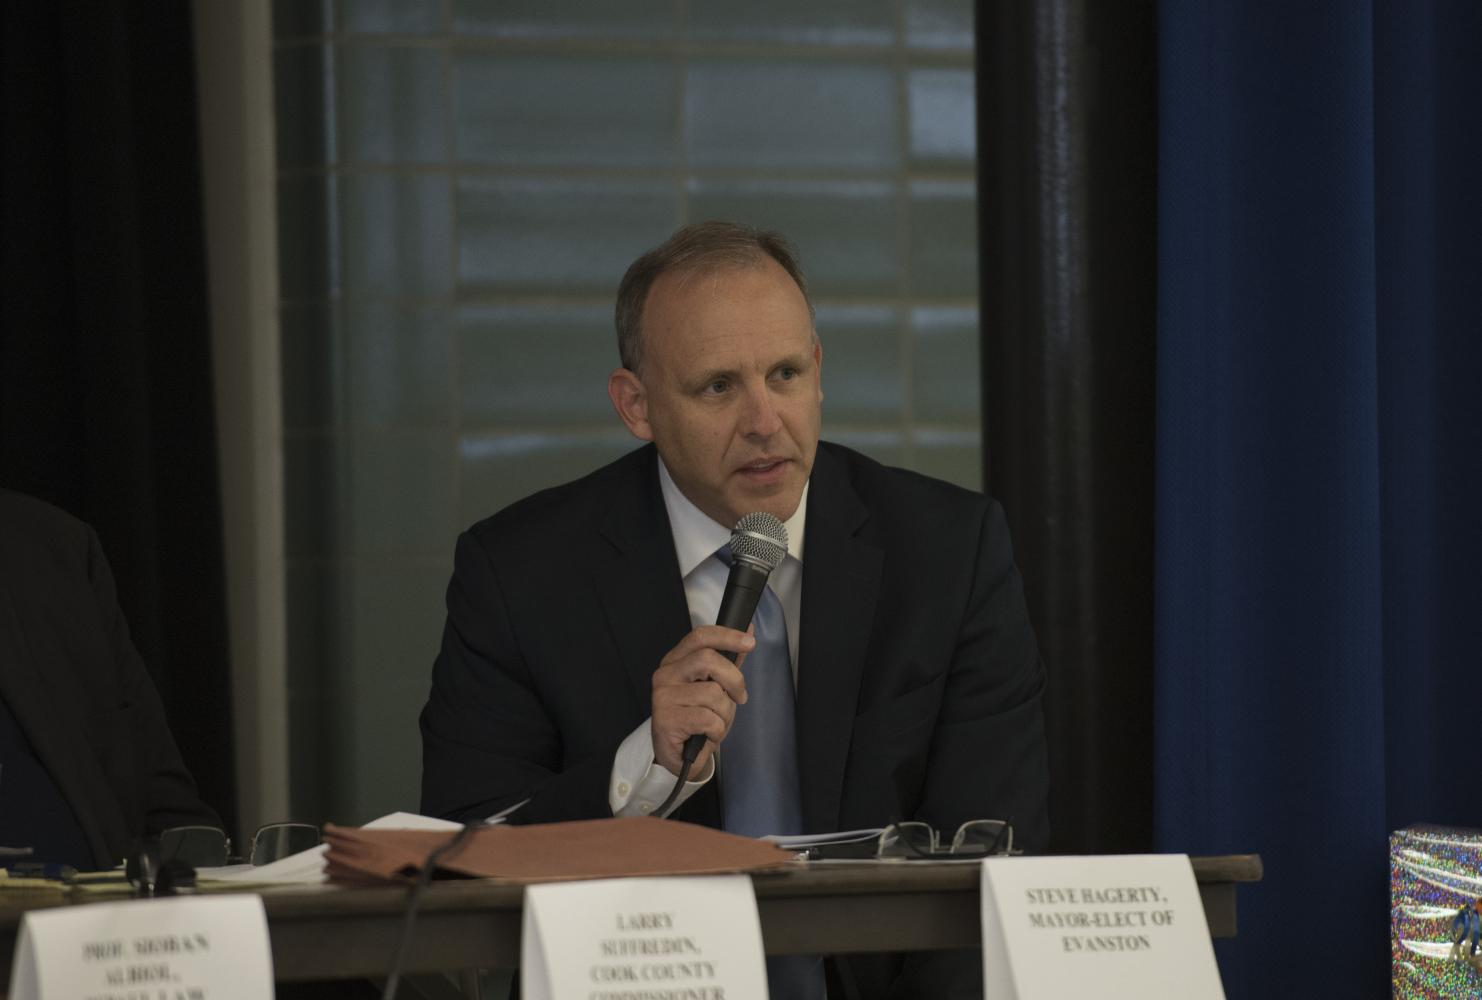 Evanston mayor Steve Hagerty speaks at a panel. Hagerty joined an effort by Chicago mayor Rahm Emanuel and 11 other mayors nationwide to post climate change information on their cities' websites starting Sunday.